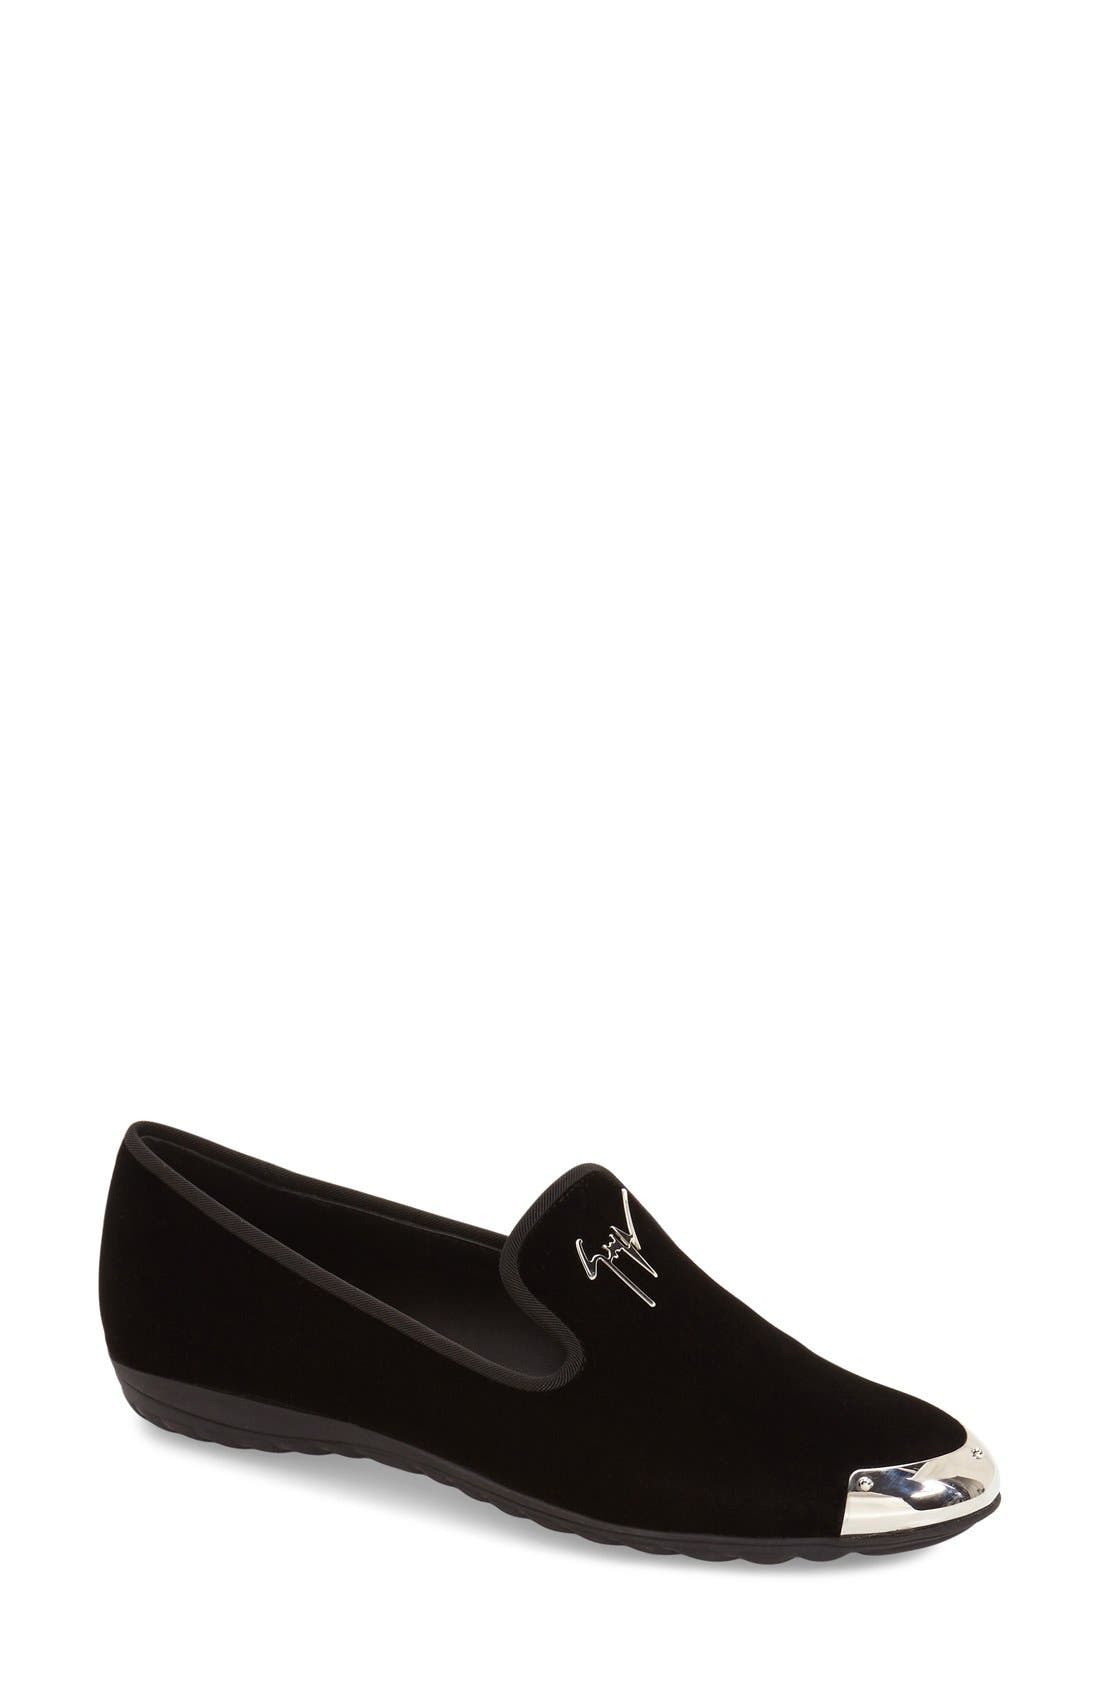 Giuseppe Zanotti 'Dalila' Metallic Toe Velour Loafer (Women) (Nordstrom Exclusive)